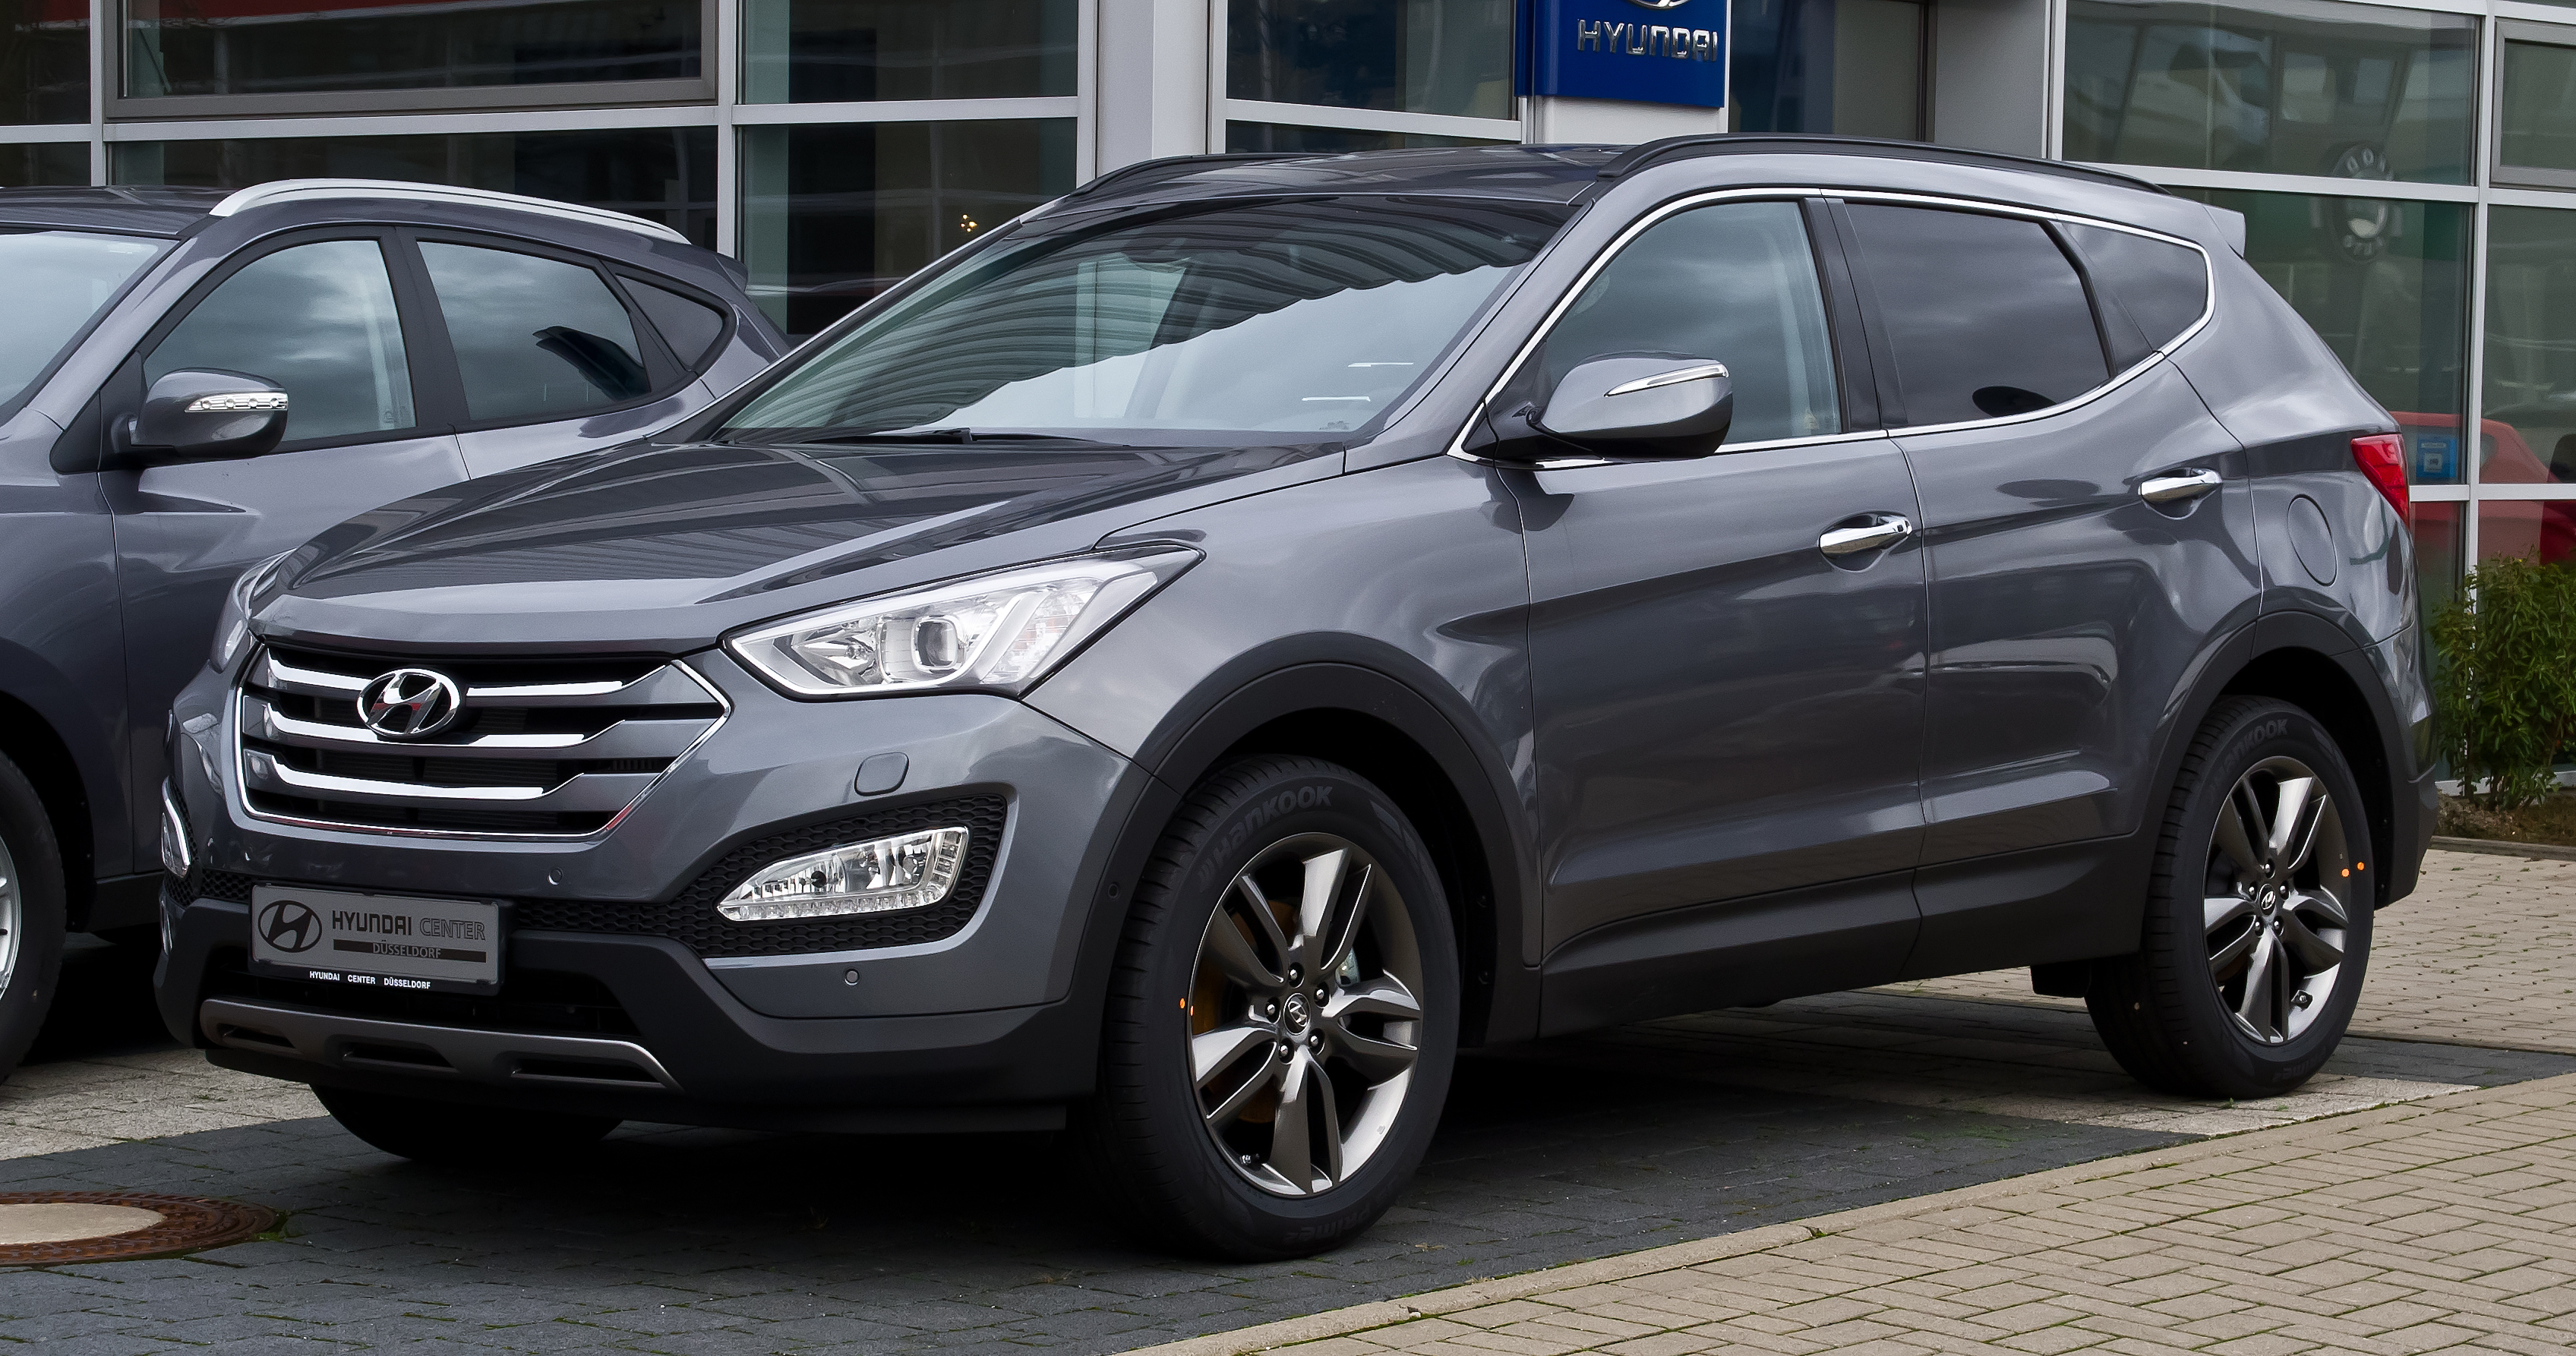 Hyundai Santa Fe 2.2 2012 photo - 4